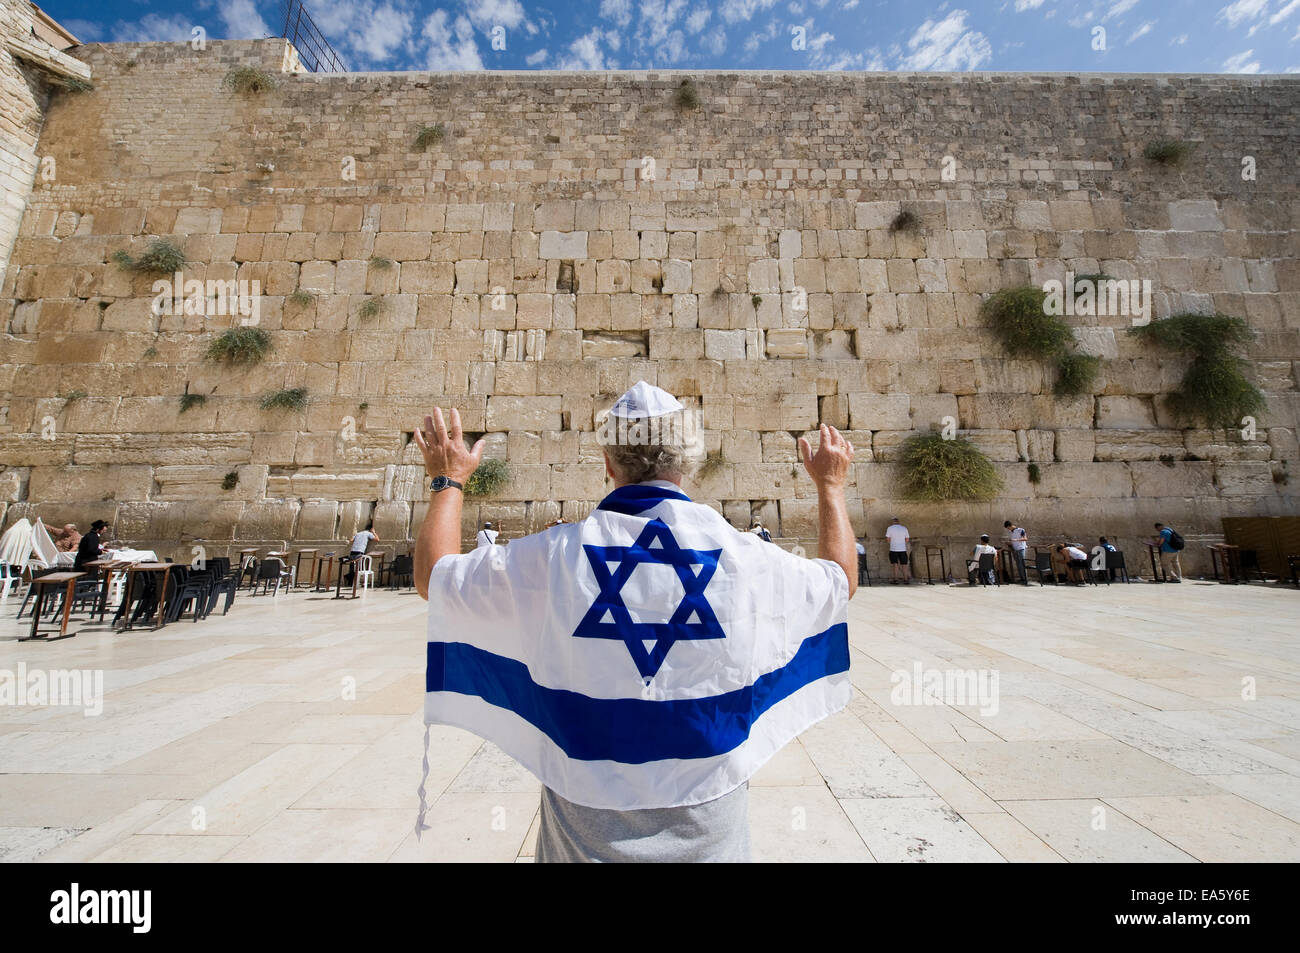 A man with an Israelian flag and his arms raised in front of the western wailing wall in the old city of Jerusalem - Stock Image